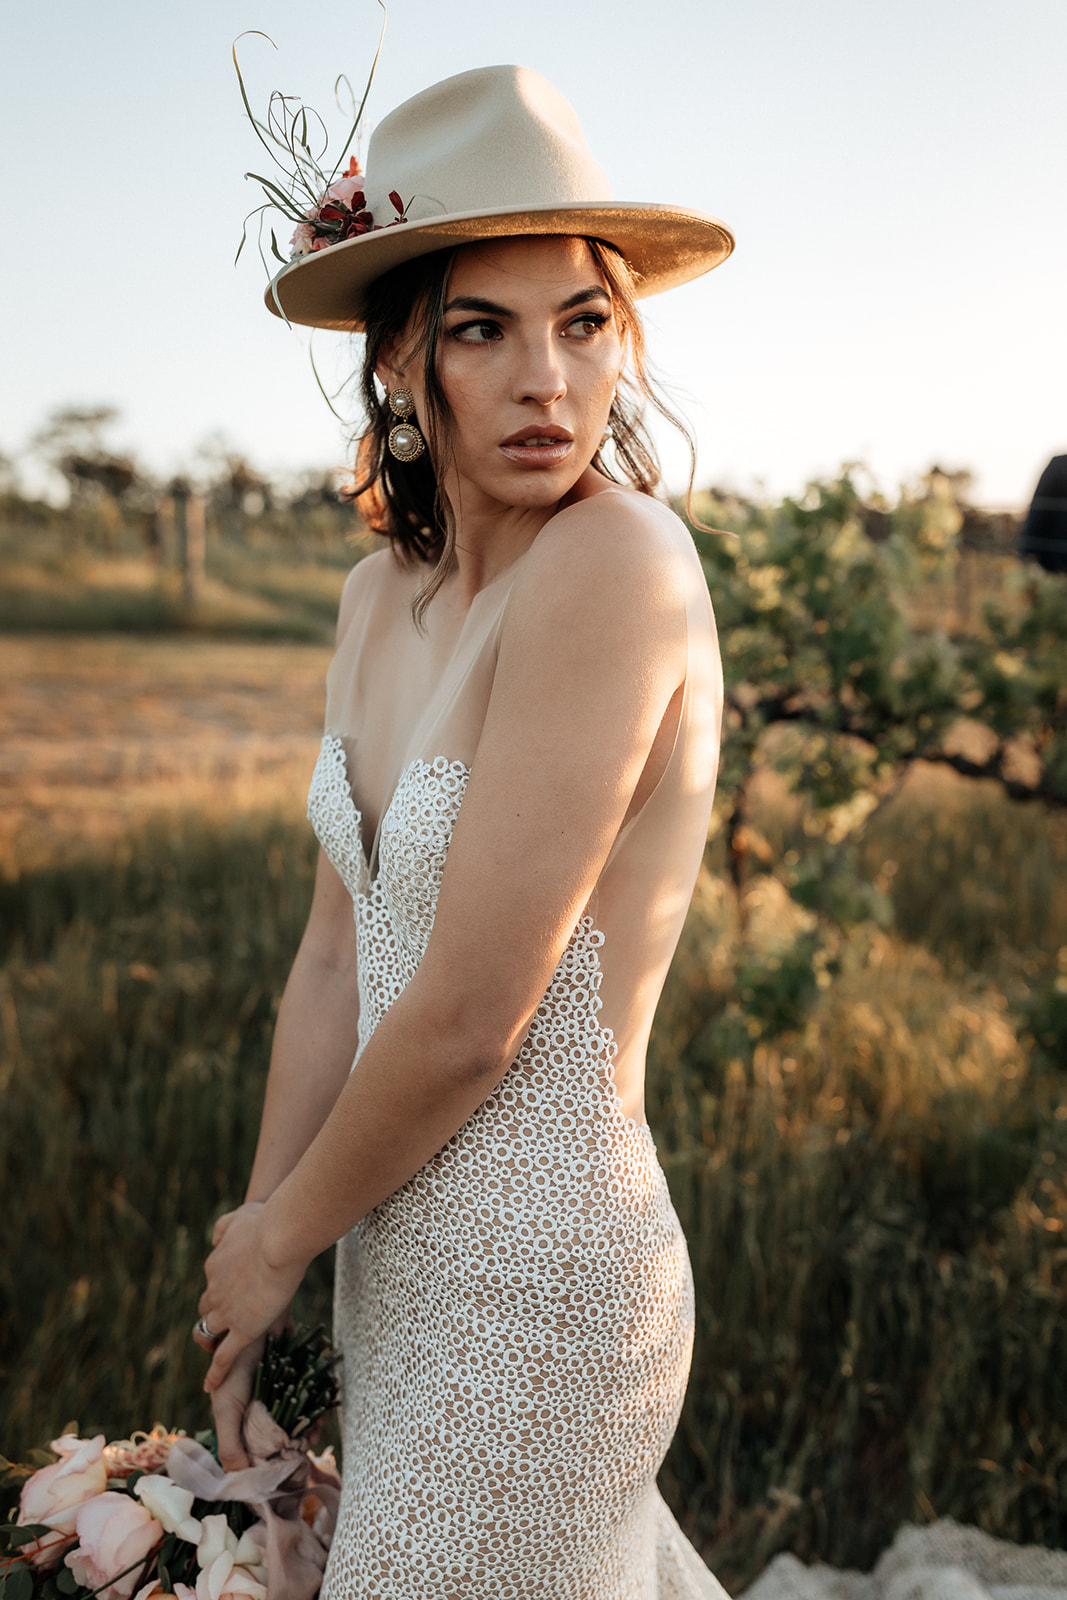 holly medway photography to the aisle australia country weddings floral design bridal gowns